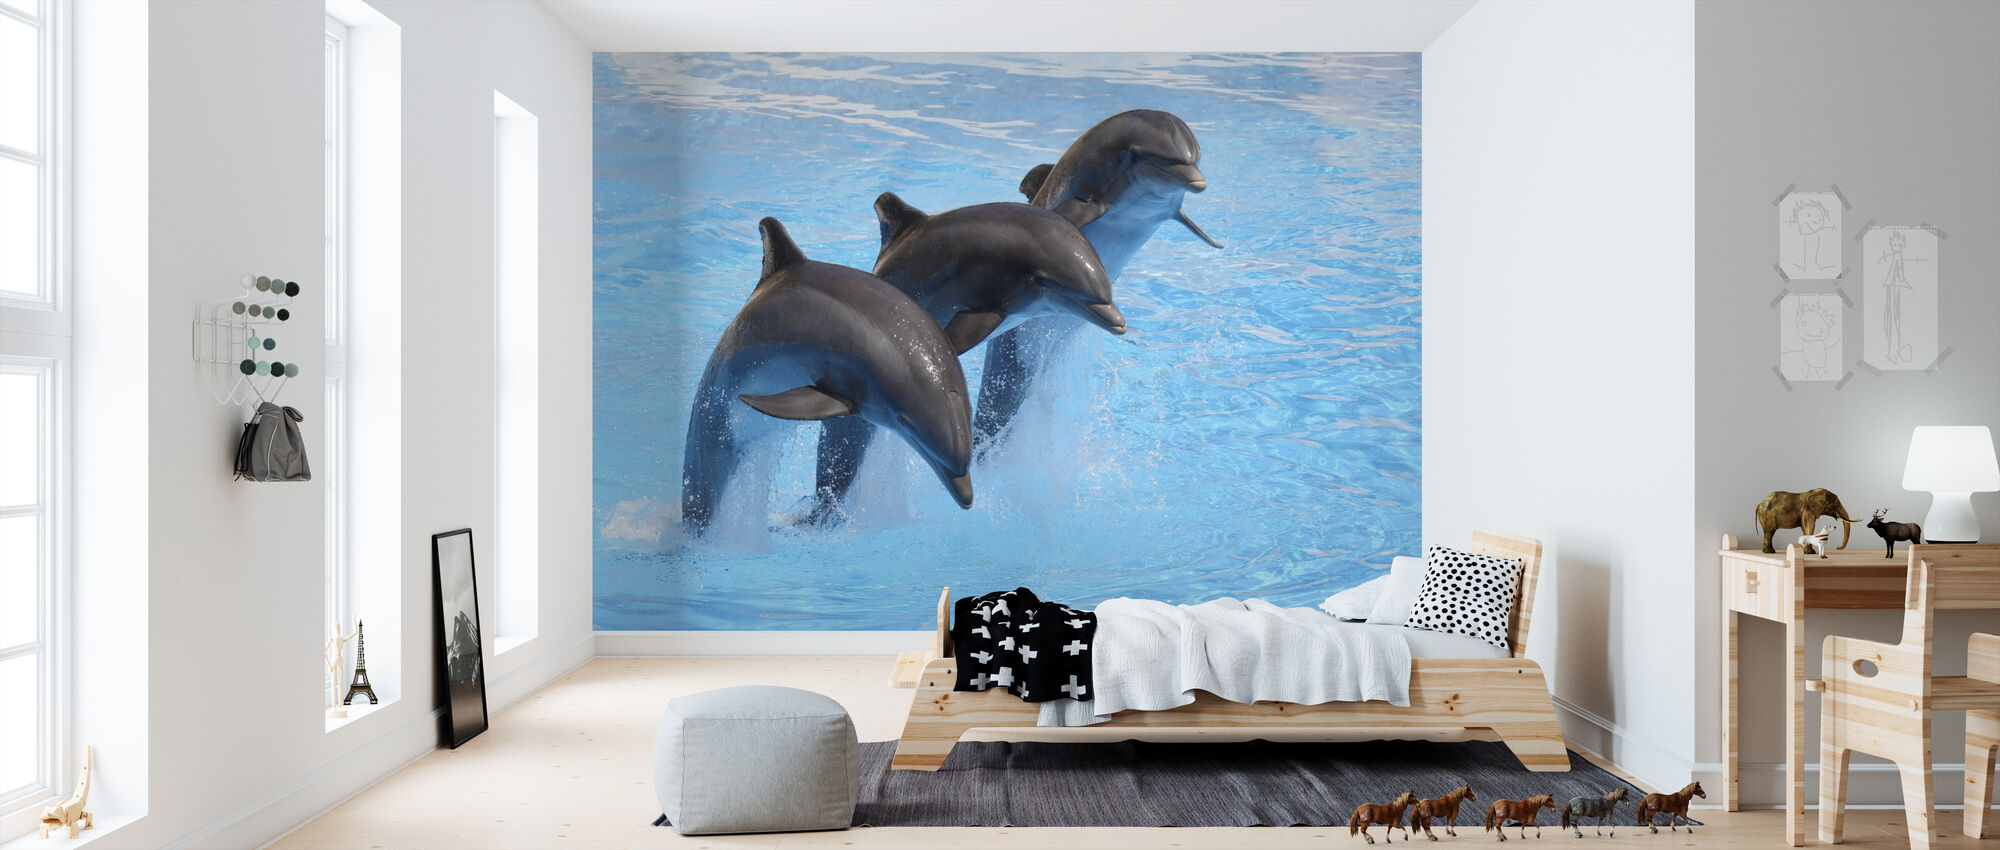 Bottlenose Dolphins - Wallpaper - Kids Room